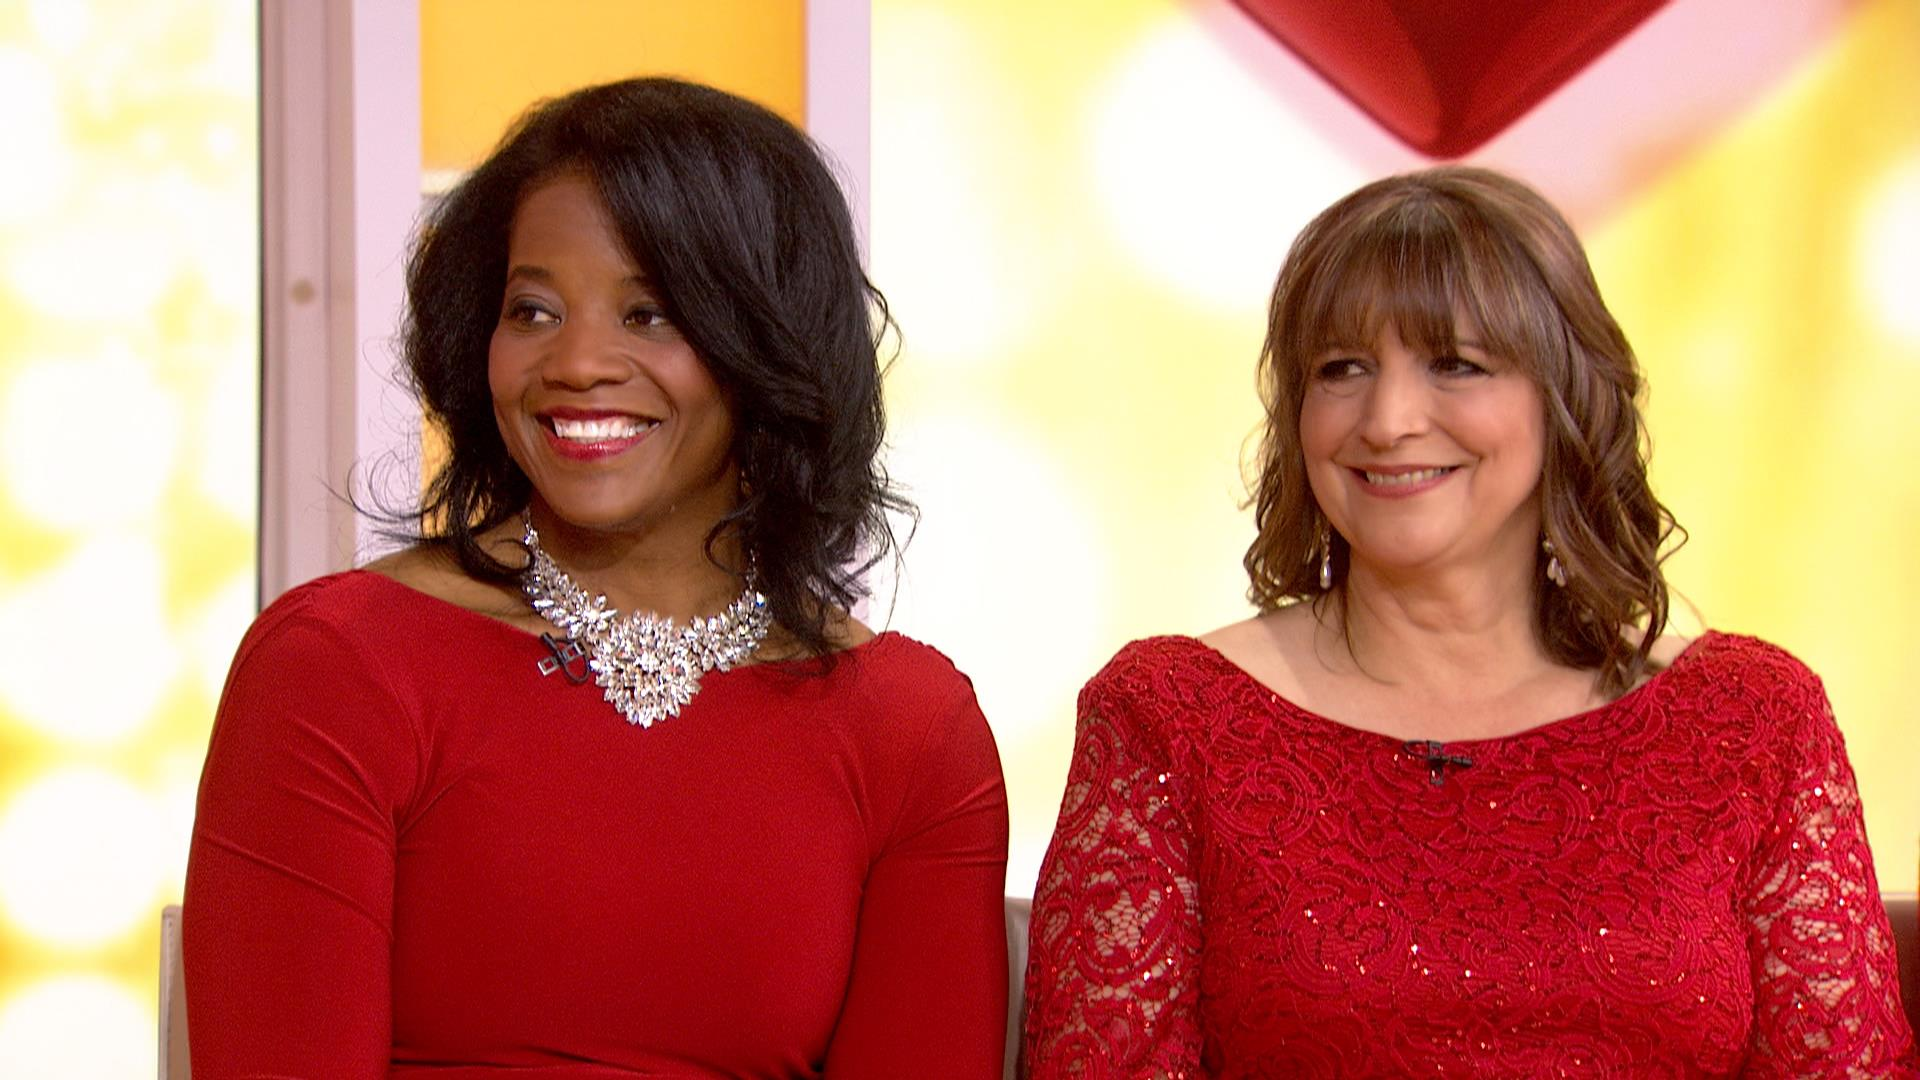 Red Dress Awards Meet Two Women Whove Made Heart Healthy Changes